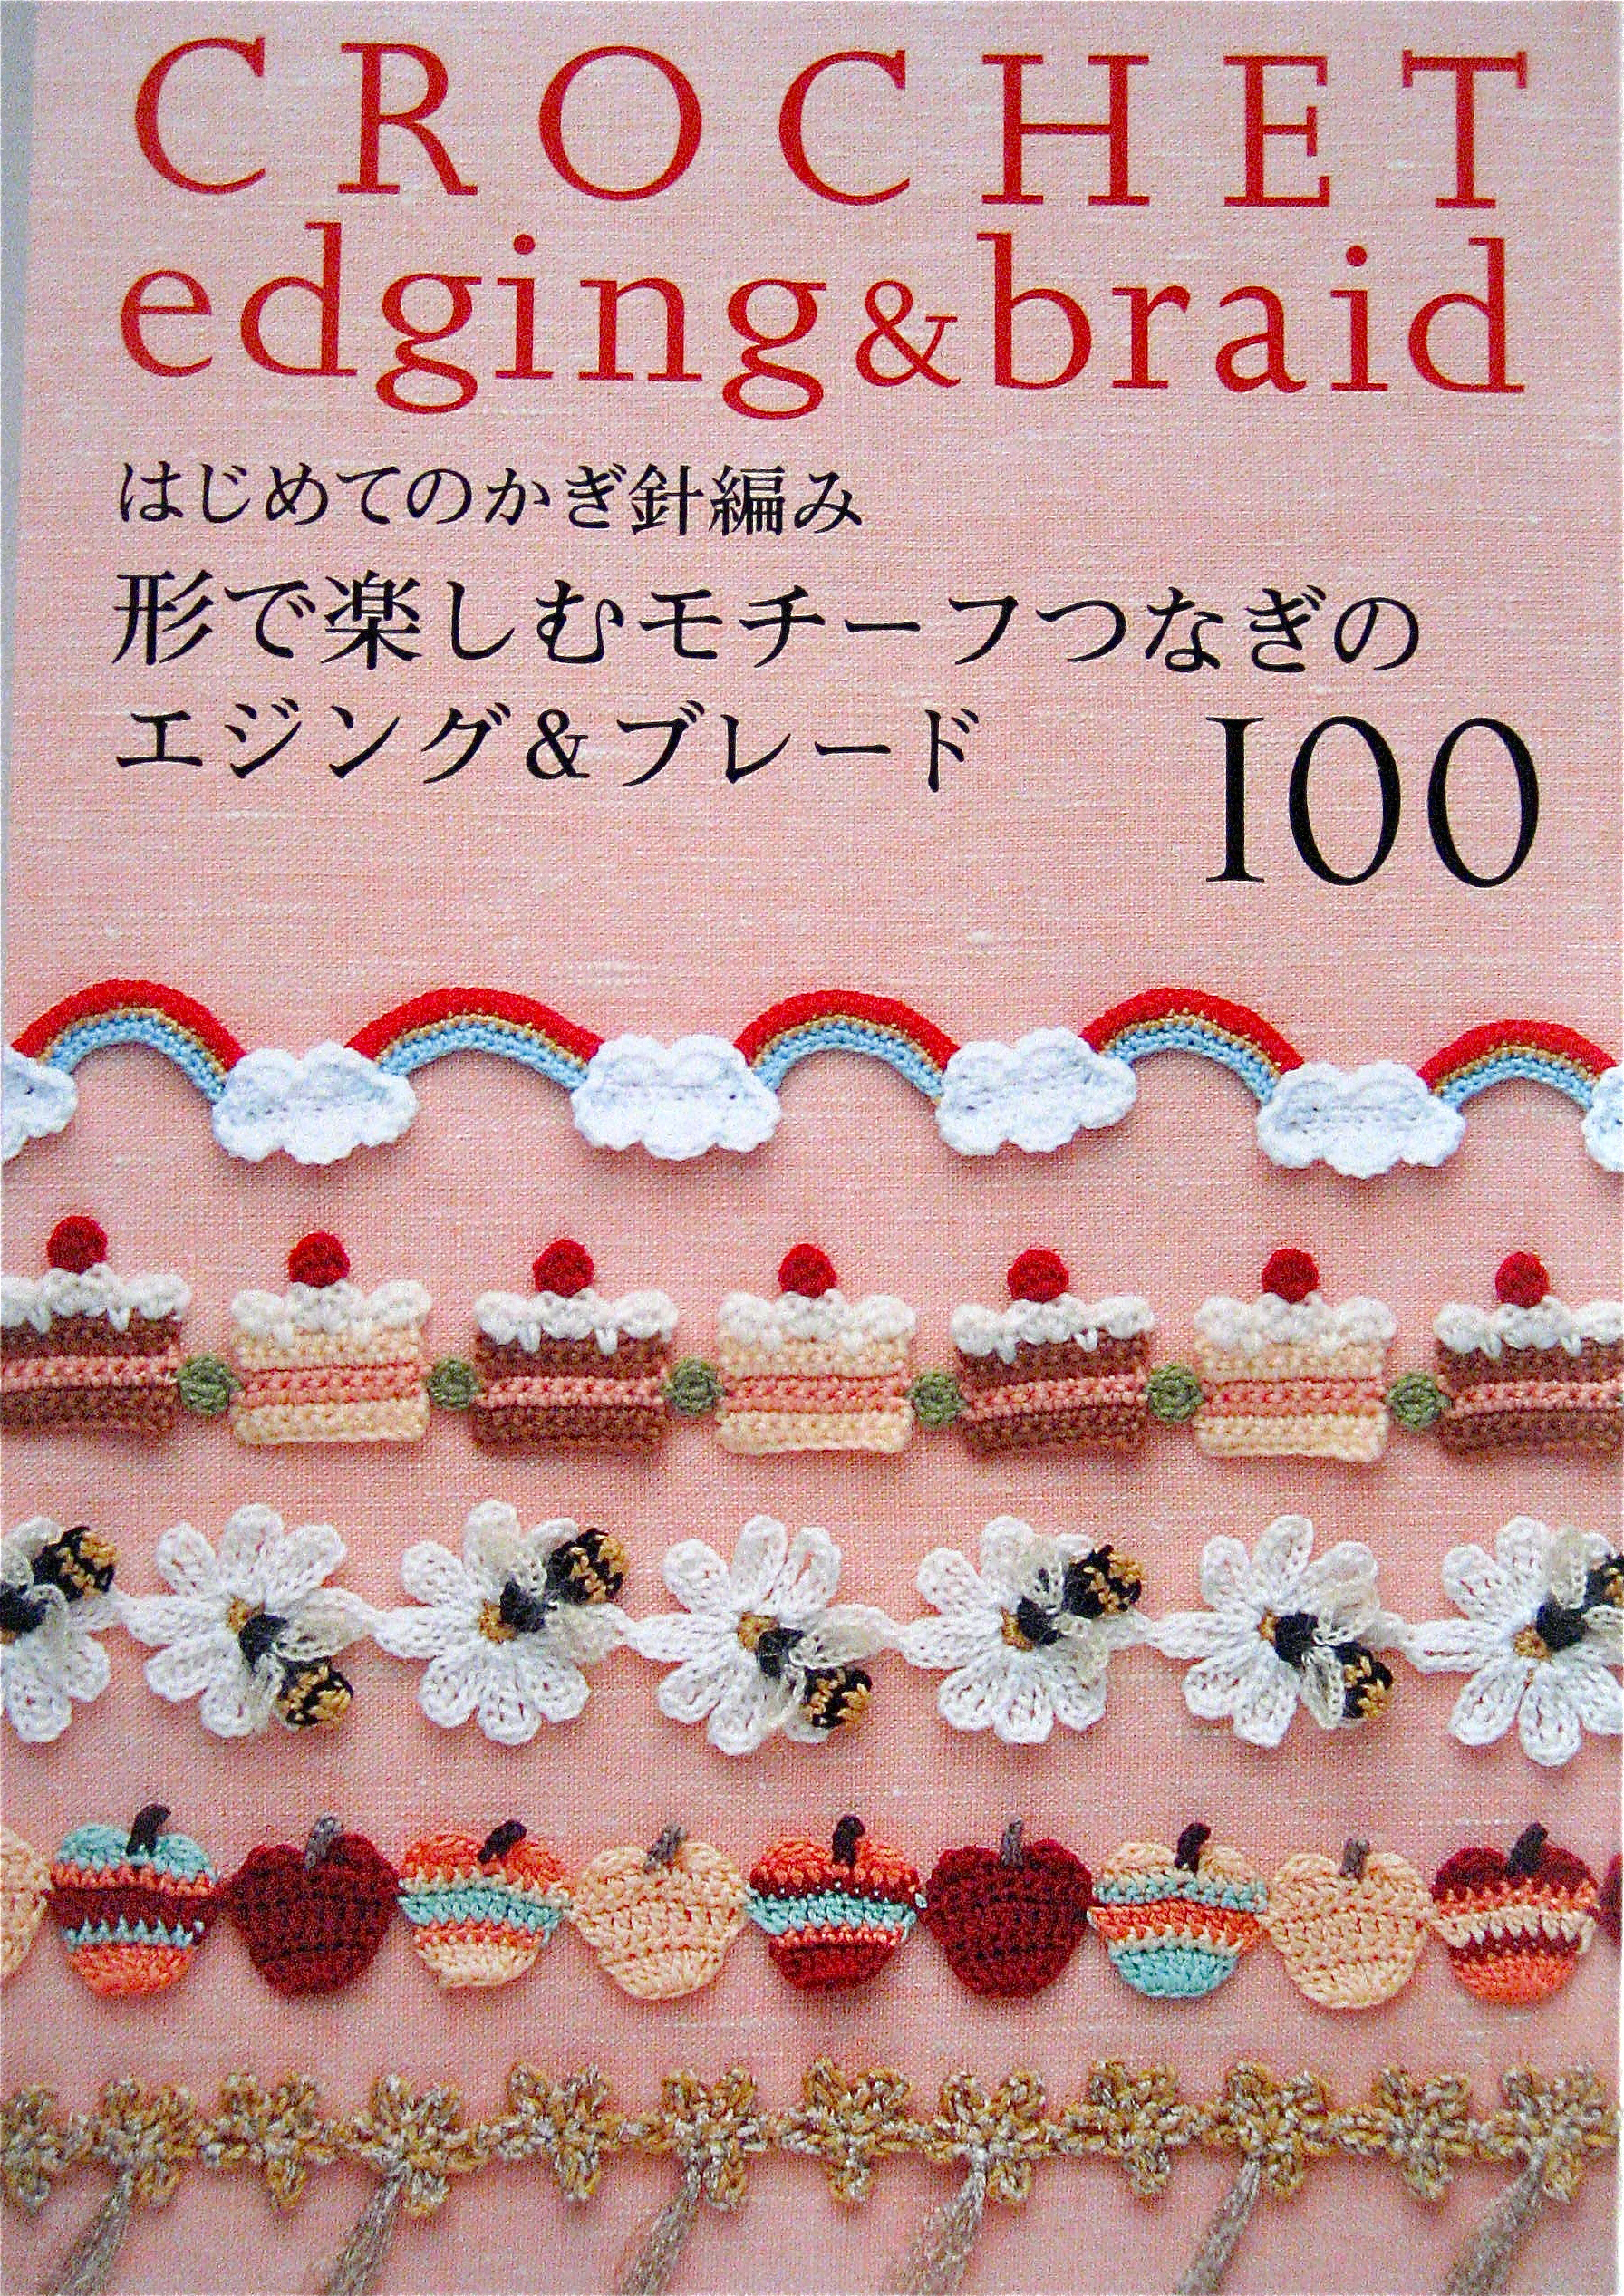 Crochet Japanese Book